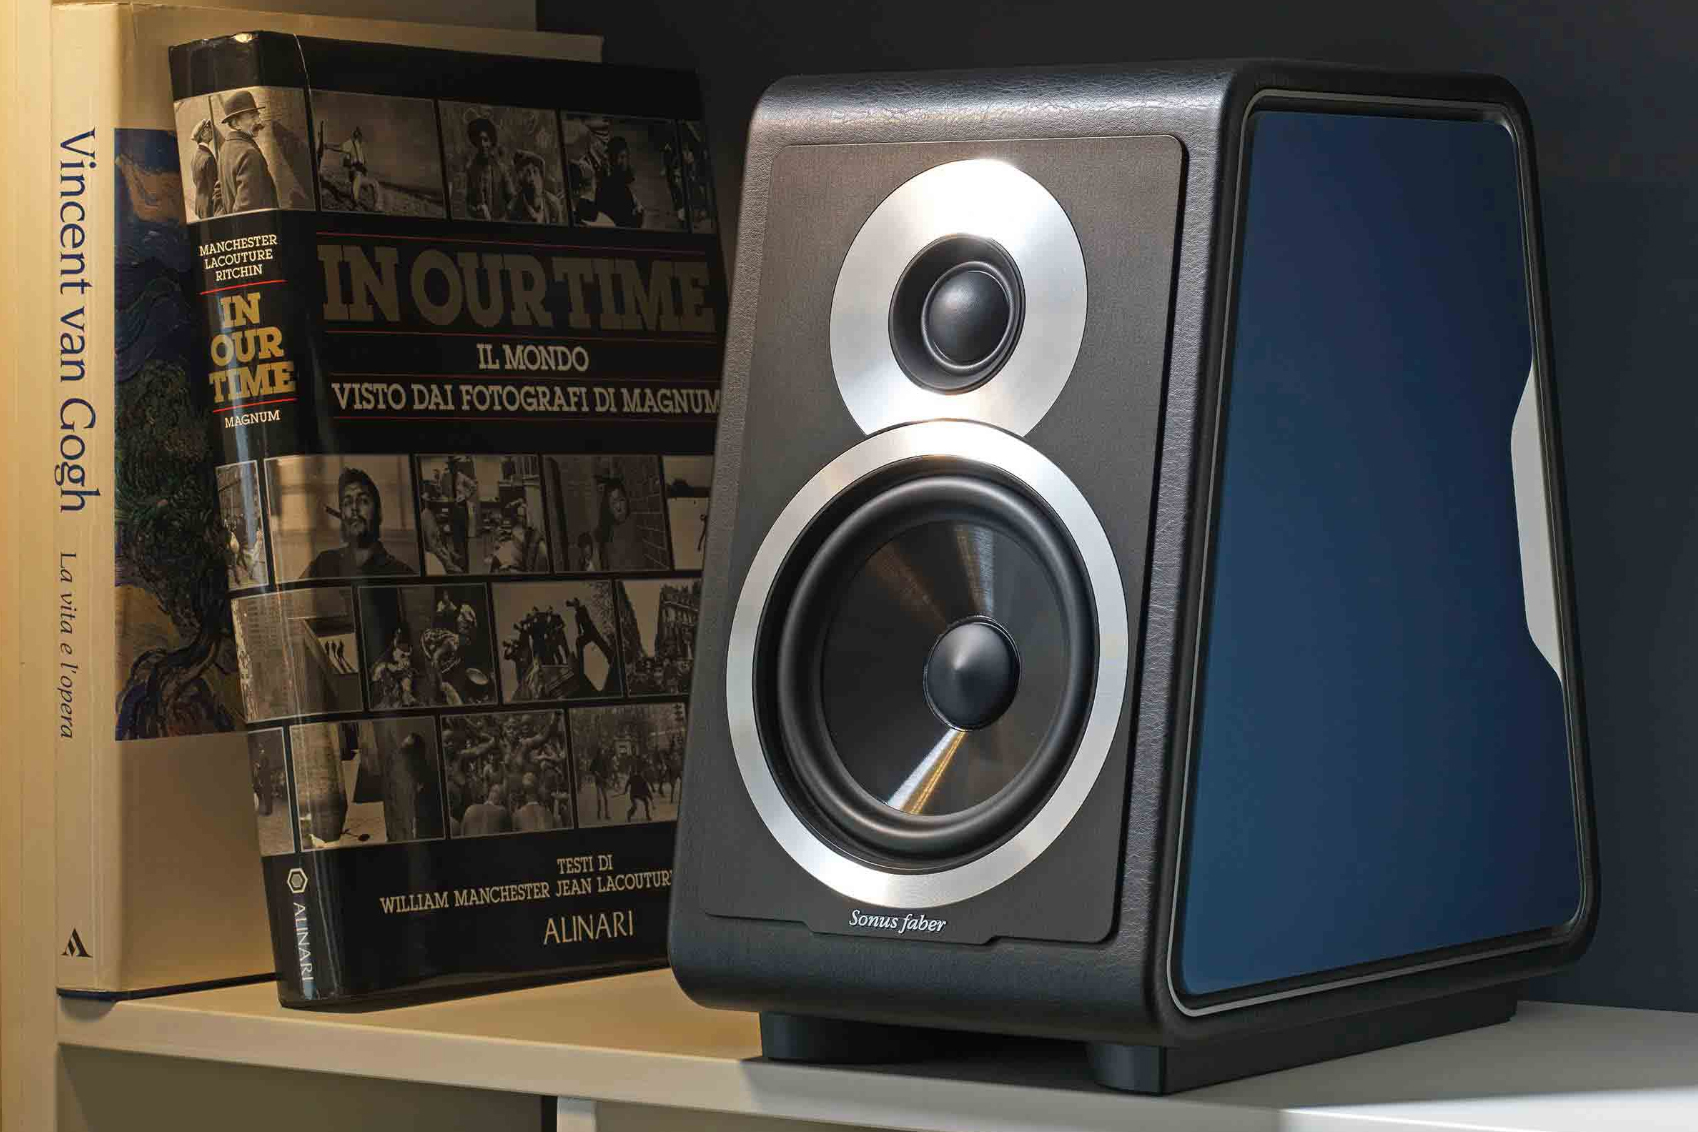 Sonus faber – The Sound Environment